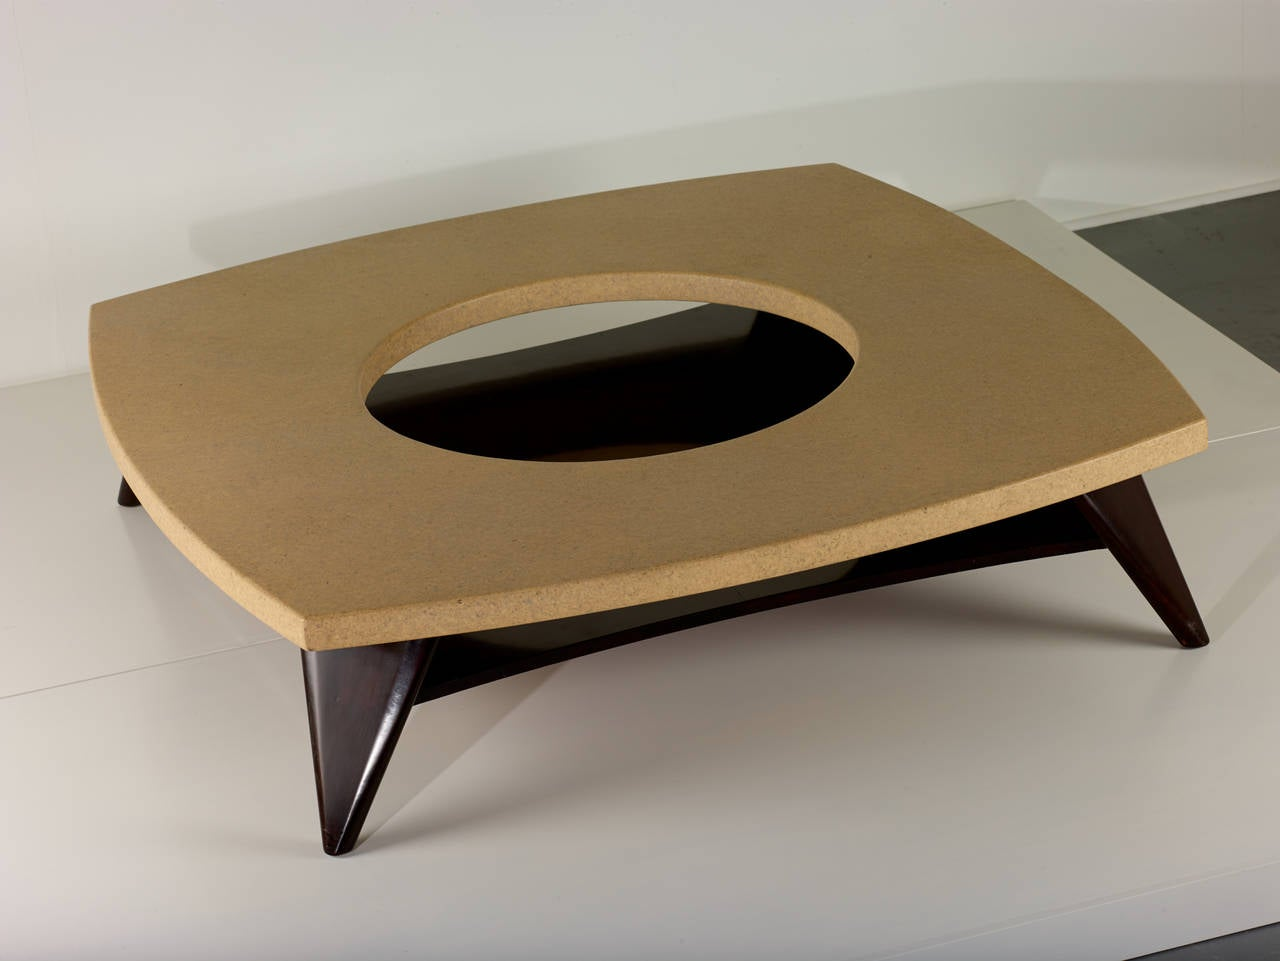 Lacquered Paul Frankl Cork Coffee Table, 1951 For Sale